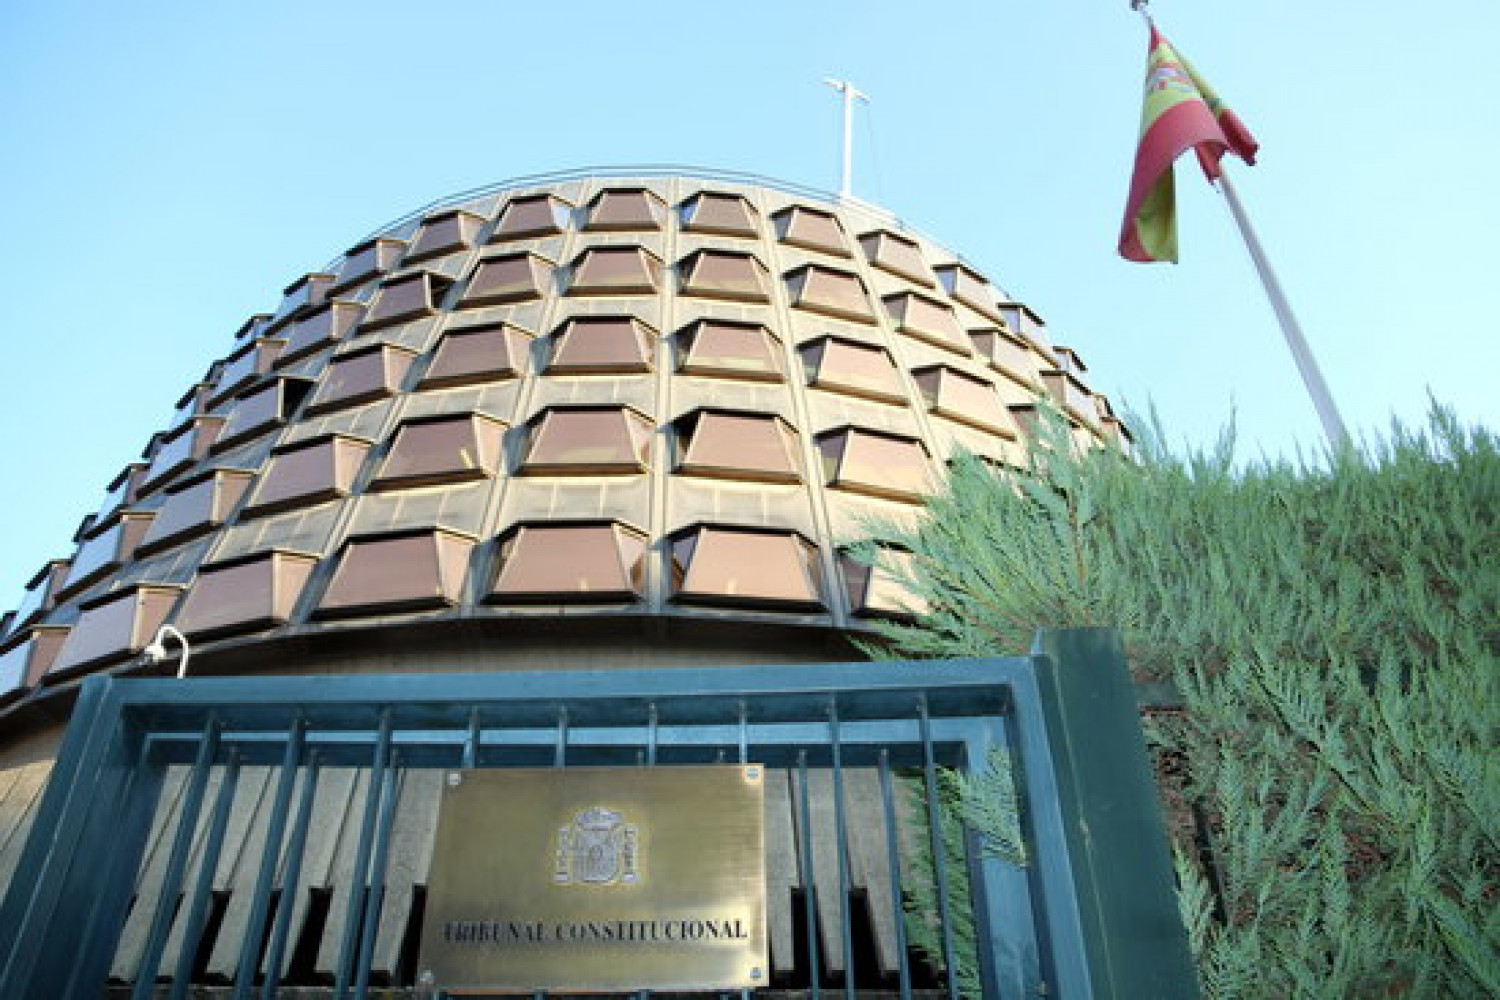 Exterior image of the Constitutional Court (Photo by Tània Tàpia)